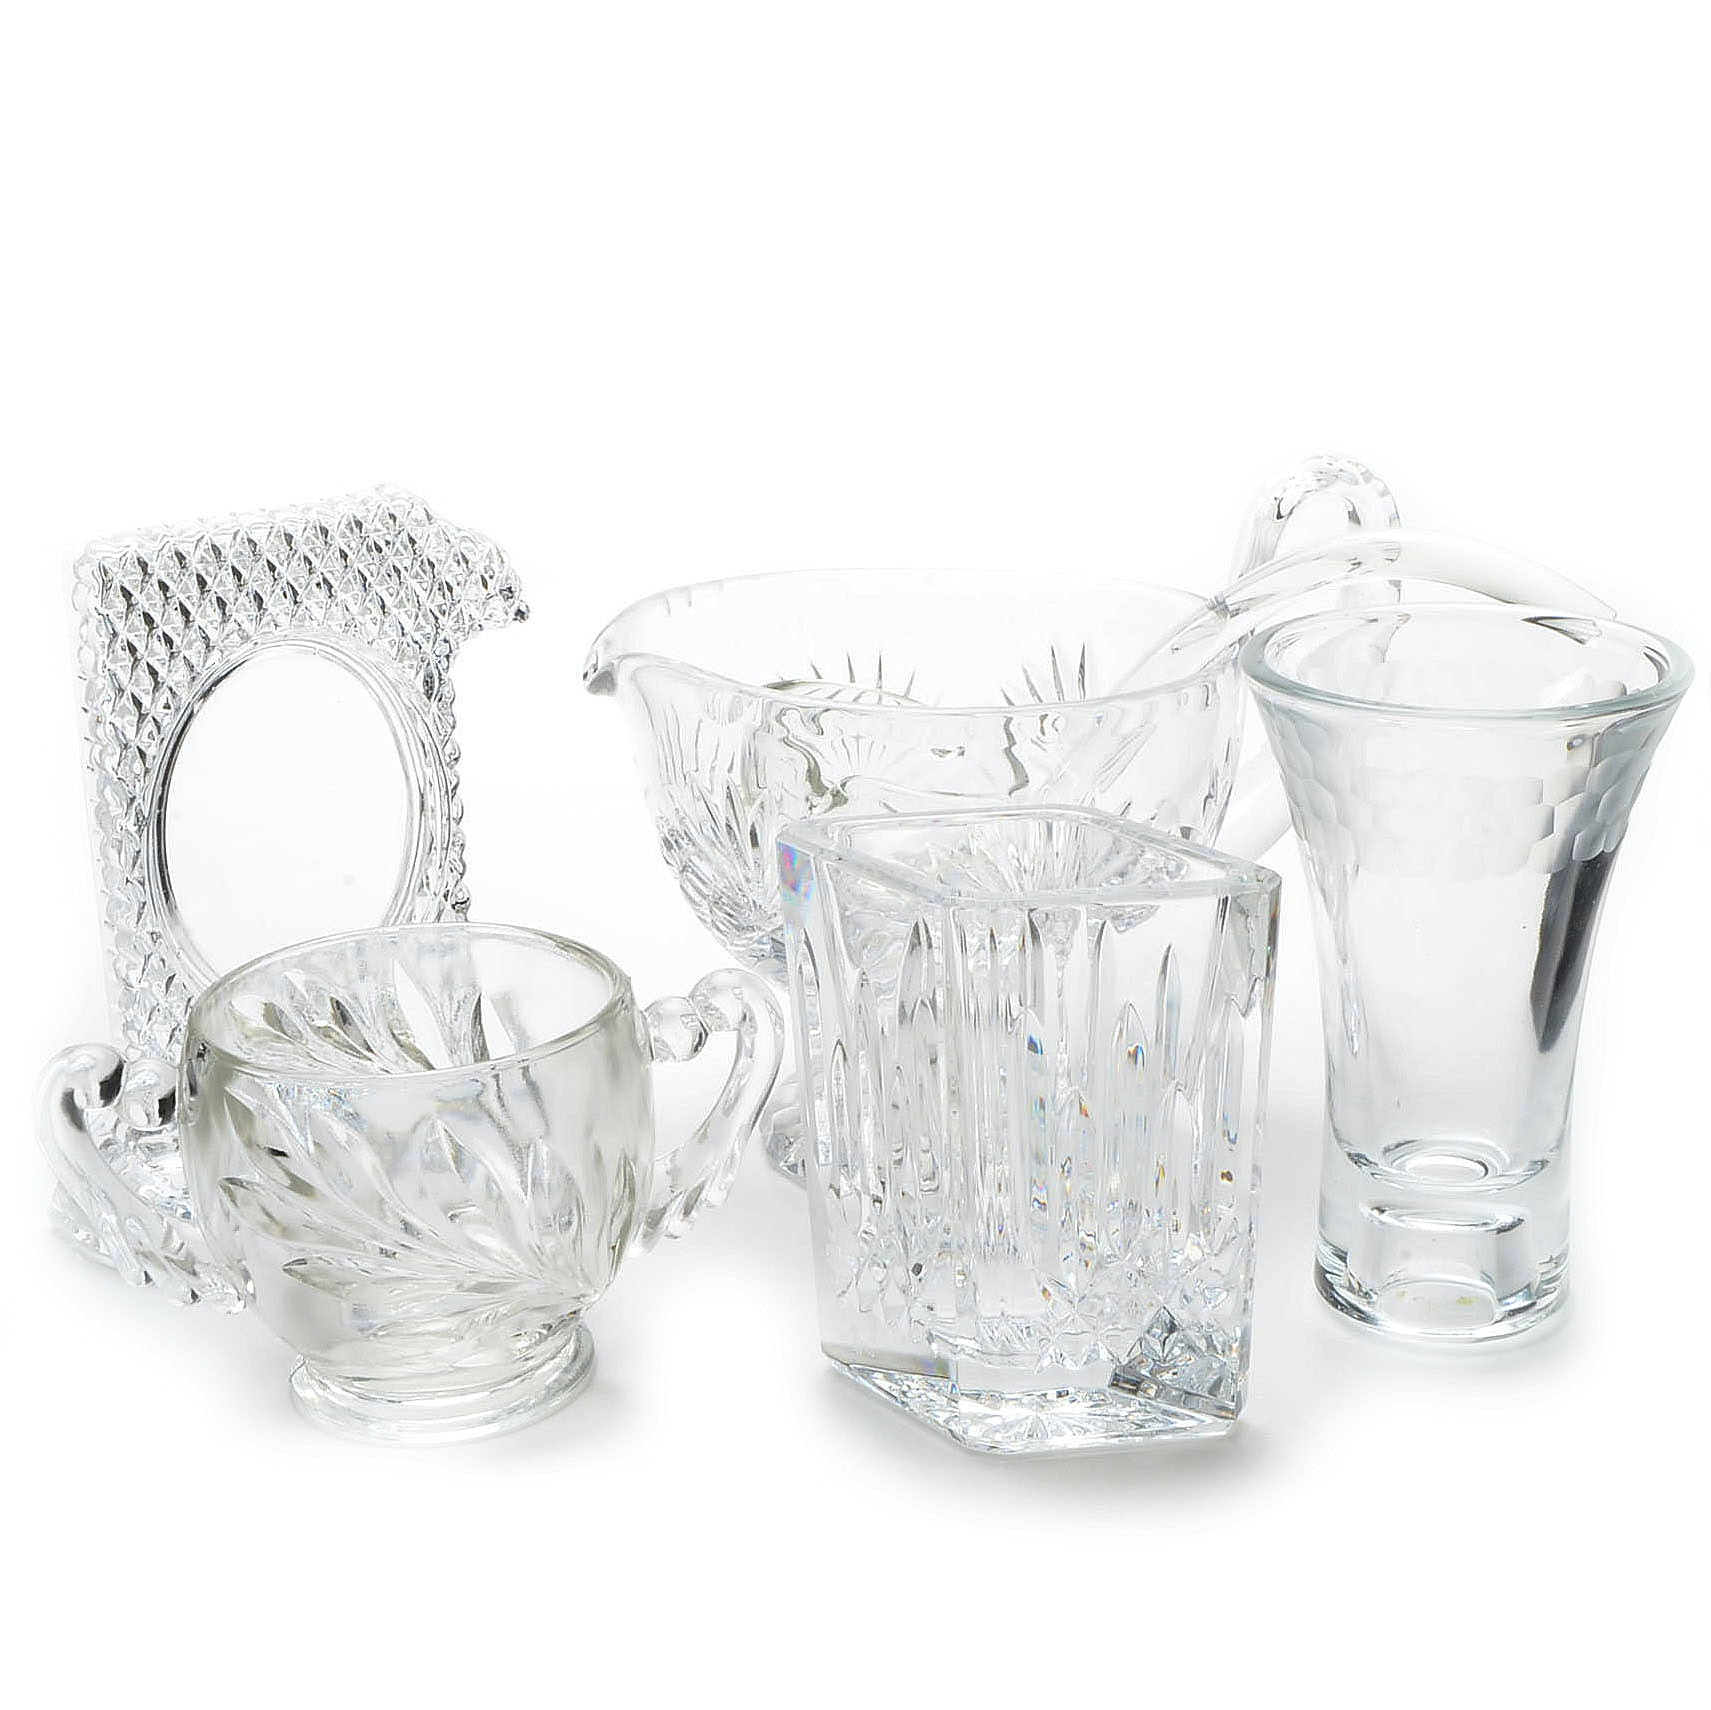 Assorted Crystal and Glass Tableware Including Waterford Crystal